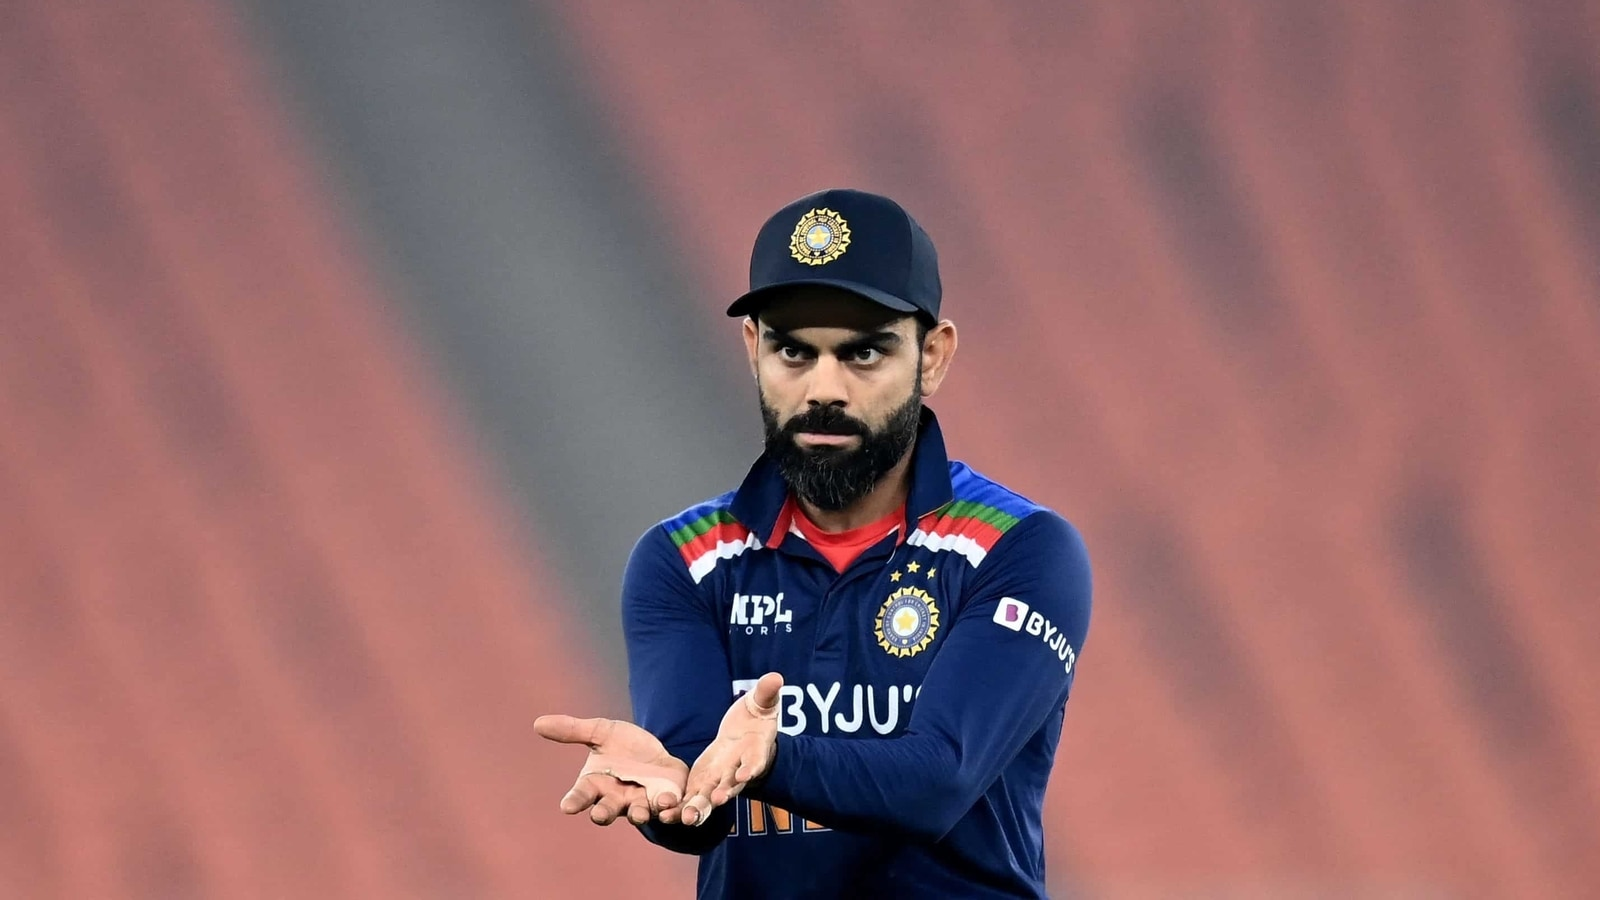 'If ball is hitting stumps, it should be out,' Virat Kohli says the umpire's call 'is creating lot of confusion' - Hindustan Times